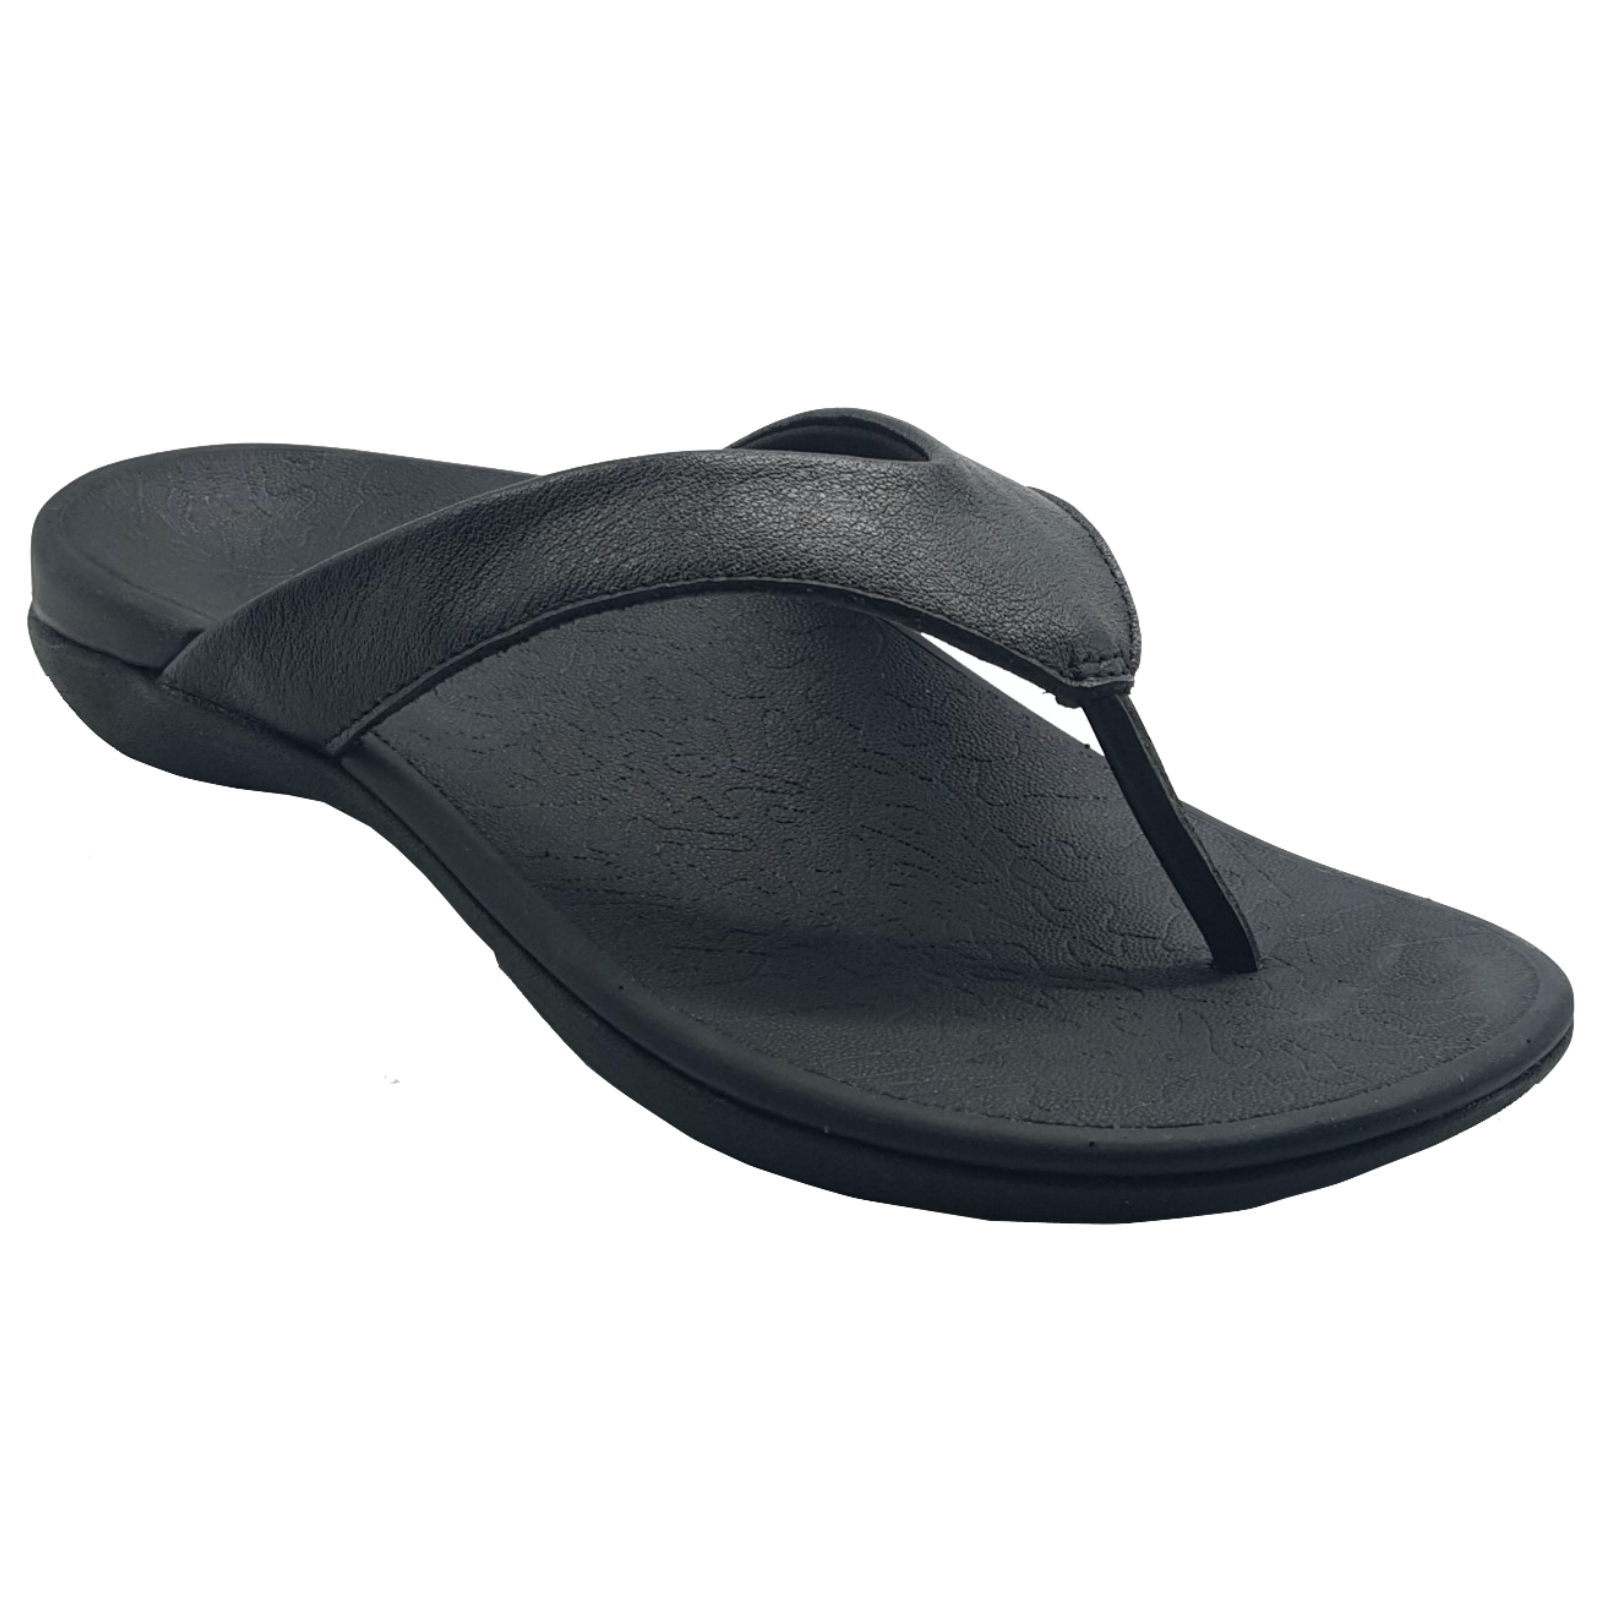 b0717ca57 h m s Remaining. AXIGN 90 Mile Orthotic Arch Support Flip Flops Thongs w  Leather Strap Archline